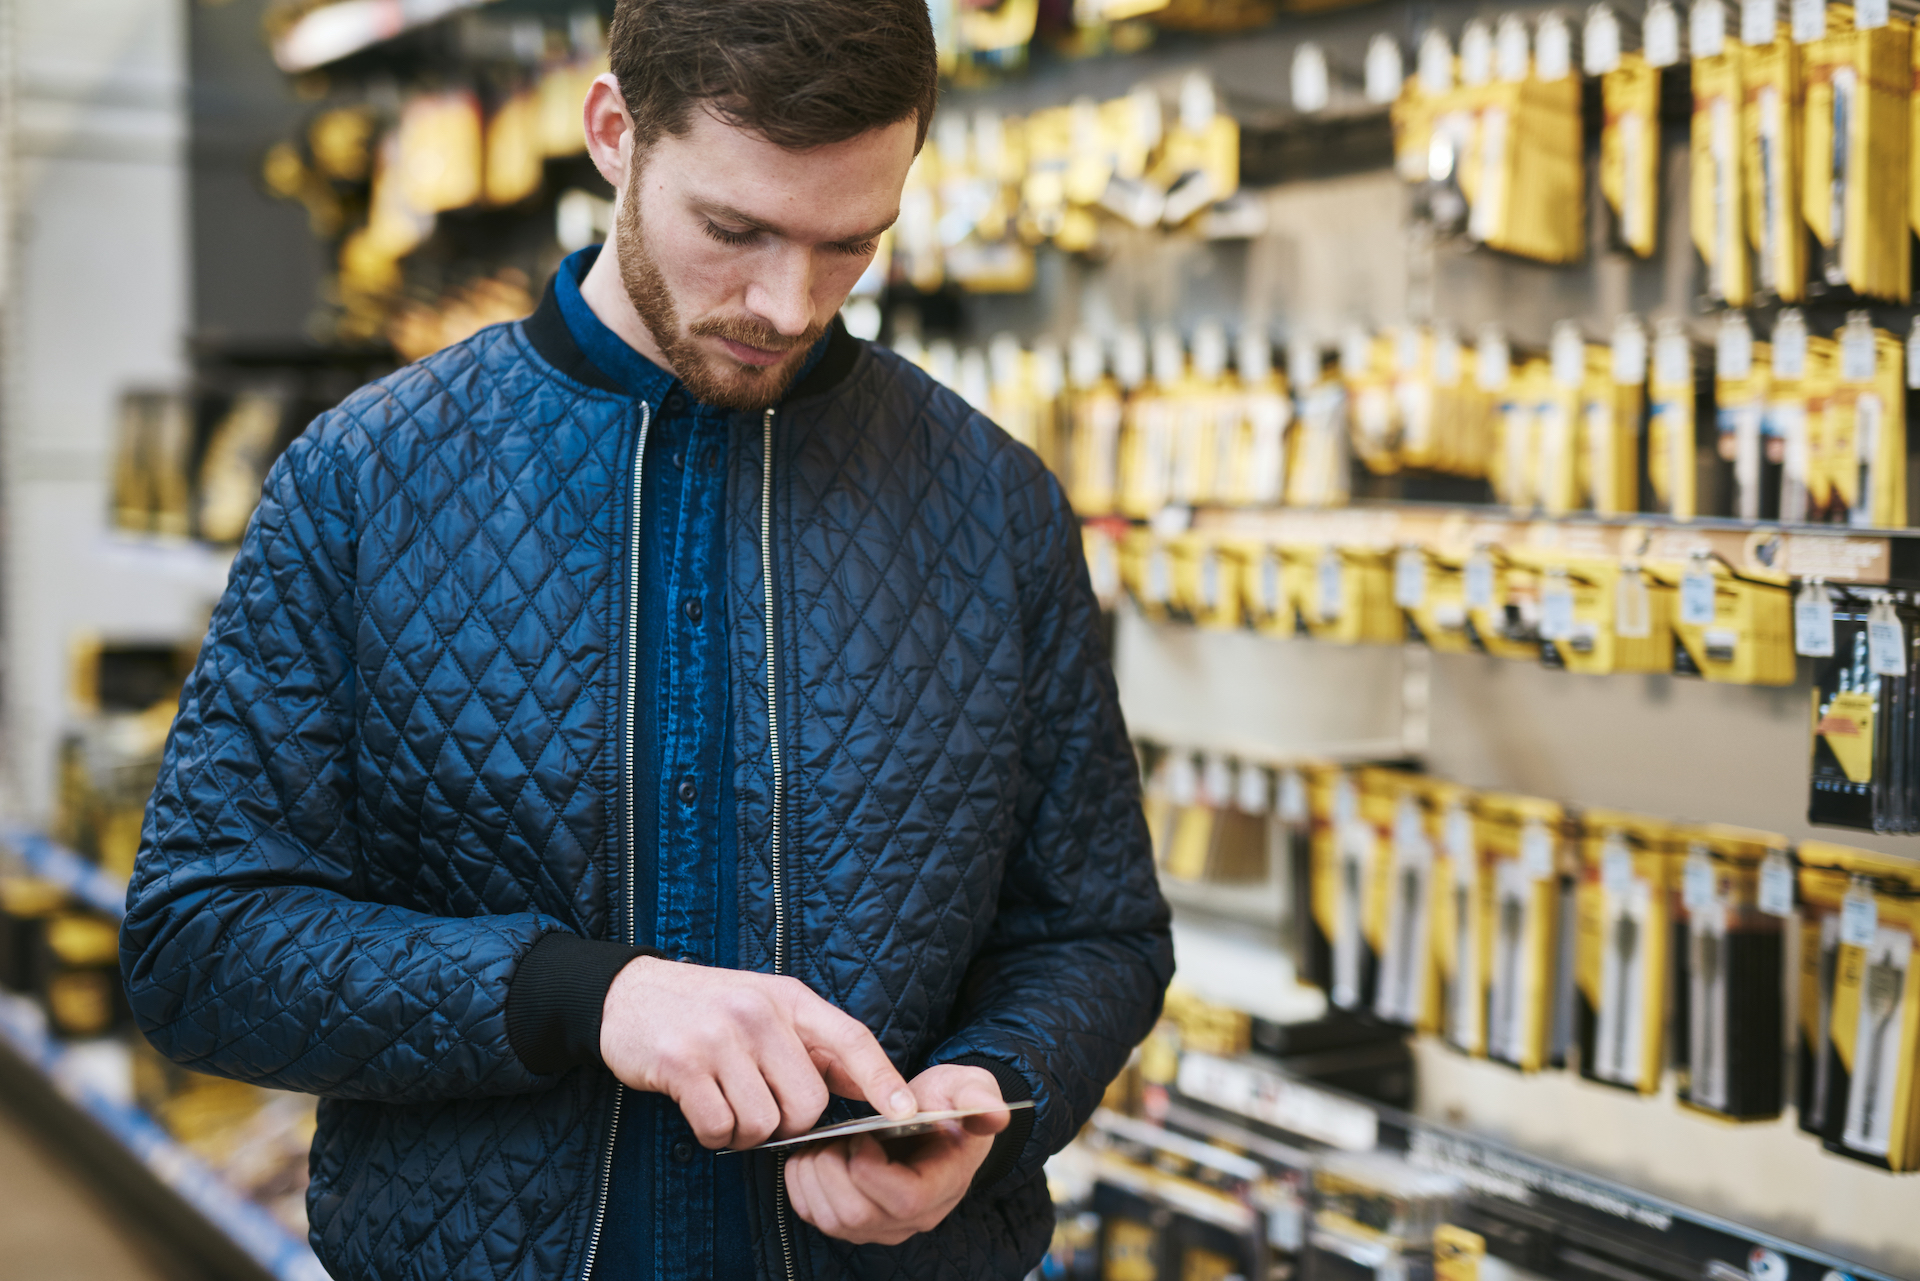 Young man checking a text message on his mobile phone as he shops in a hardware store for DIY supplies